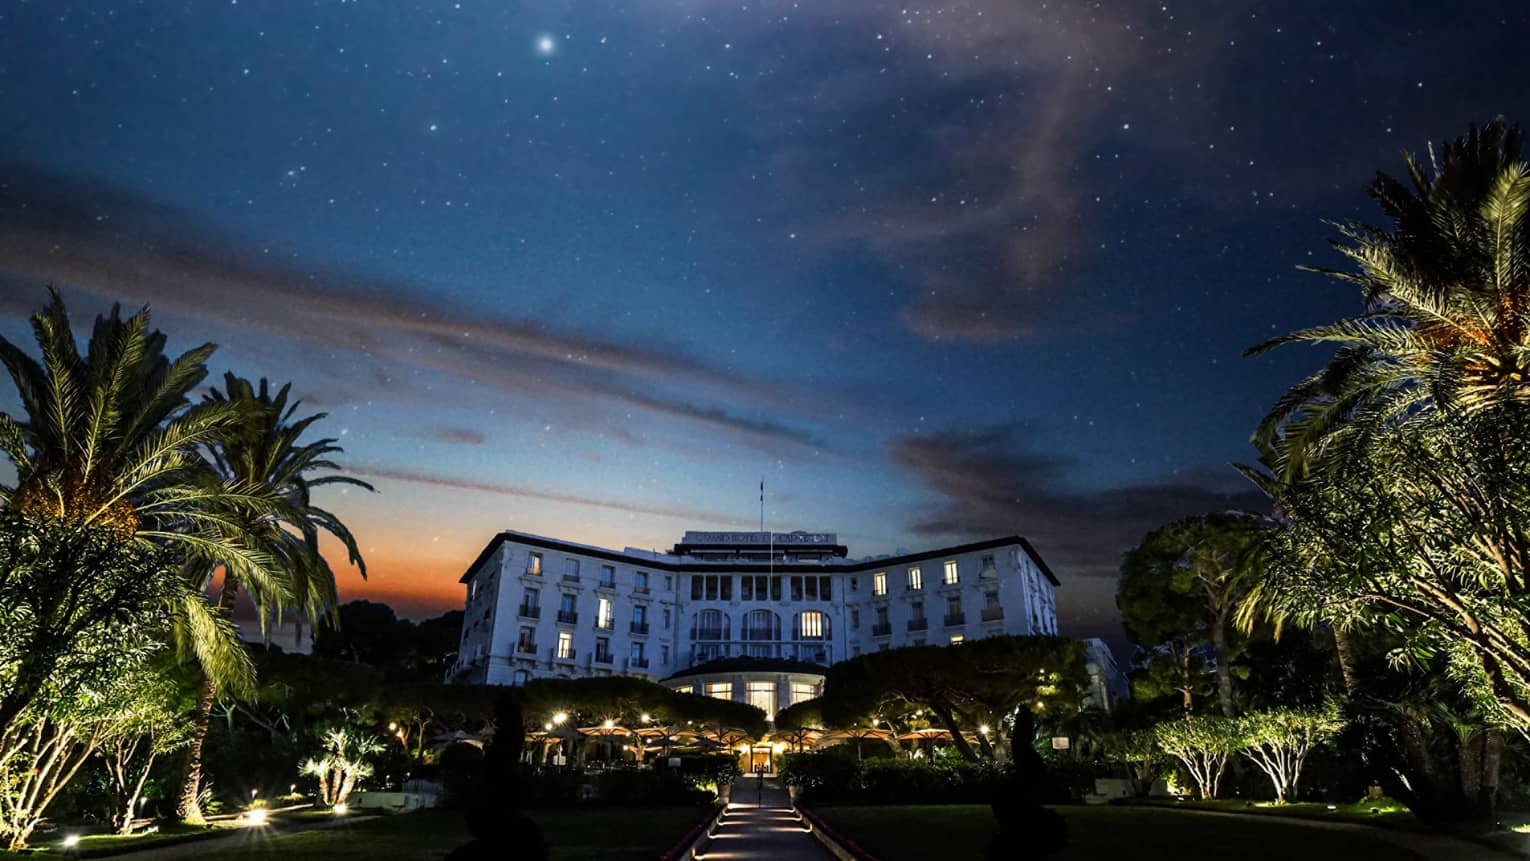 Starry sky, palm trees above Four Seasons Grand-Hotel du Cap-Ferrat